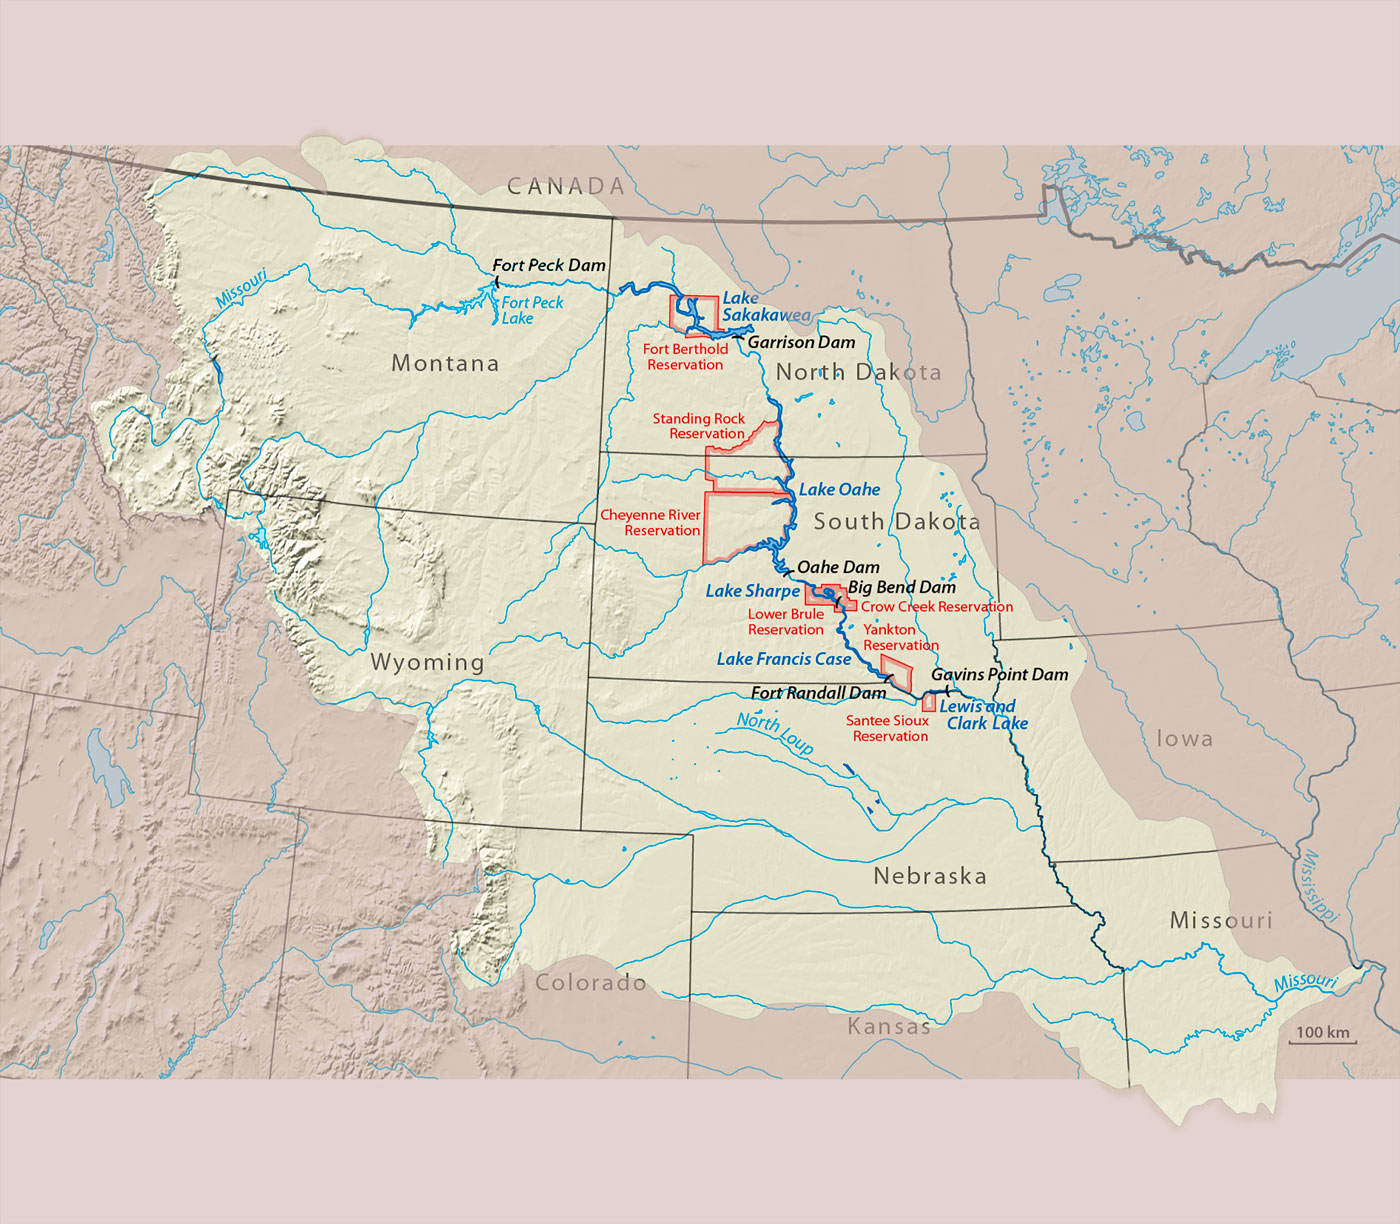 A sustainable approach to environmental management upper missouri river affect the sustainability sciox Images